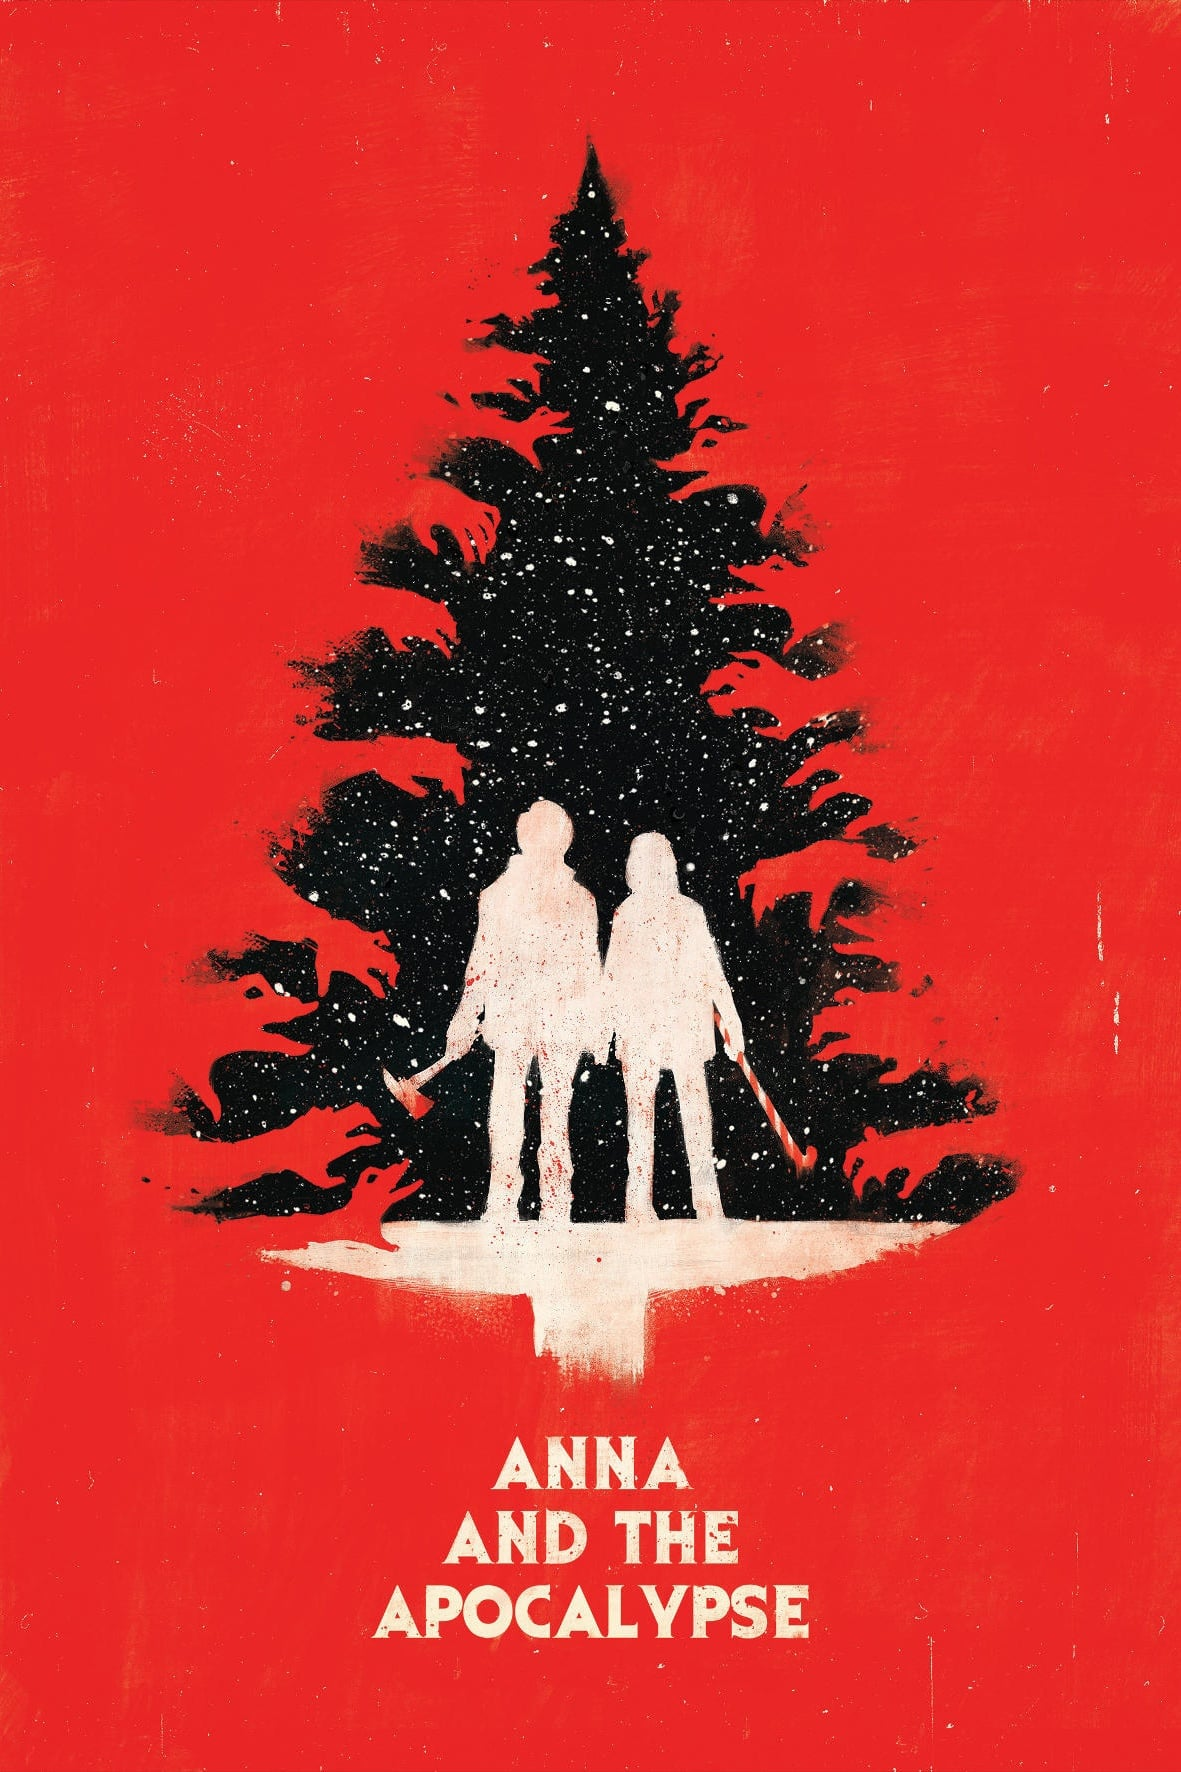 Anna and the Apocalypse (2017)